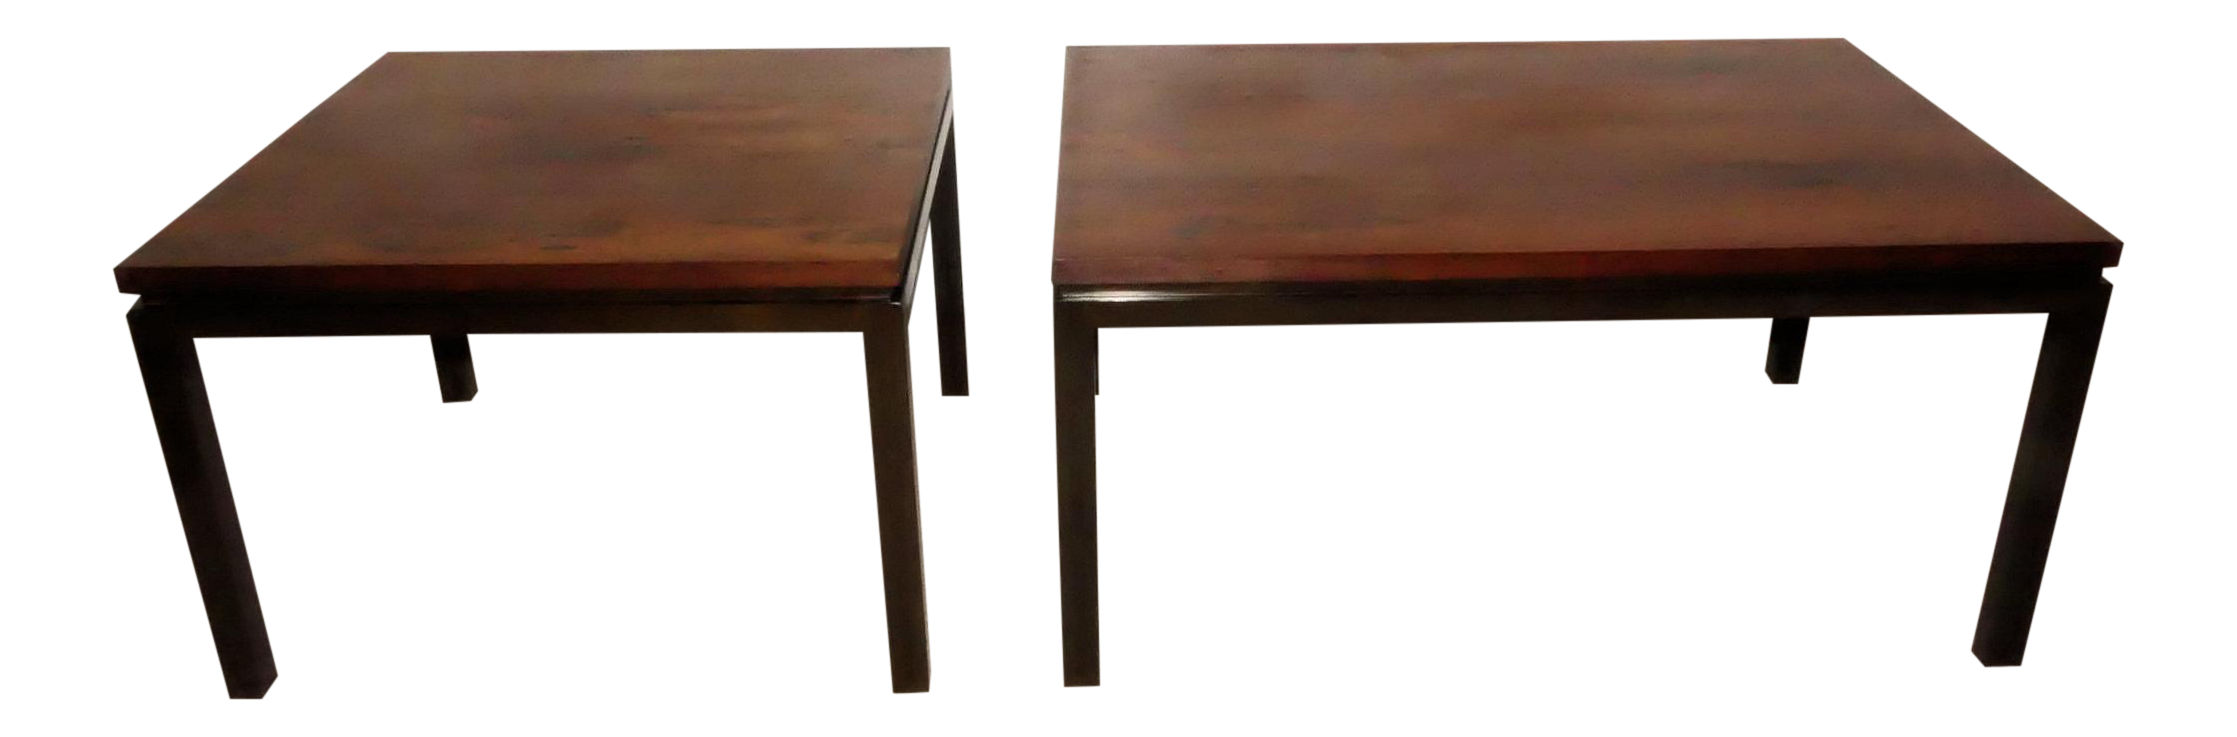 A Pair of Harvey Probber Mid-Century Modern Rosewood Cocktail Tables